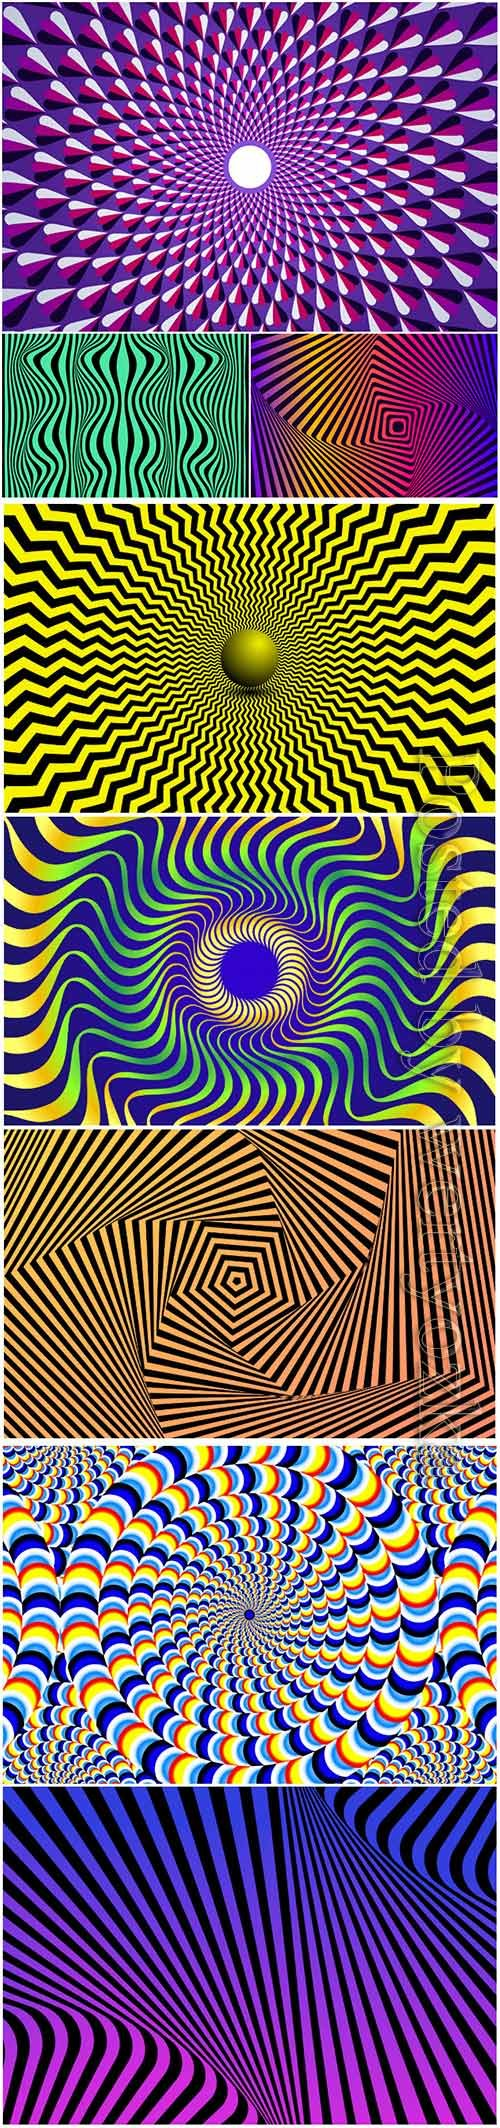 Psychedelic optical illusion vector background # 3